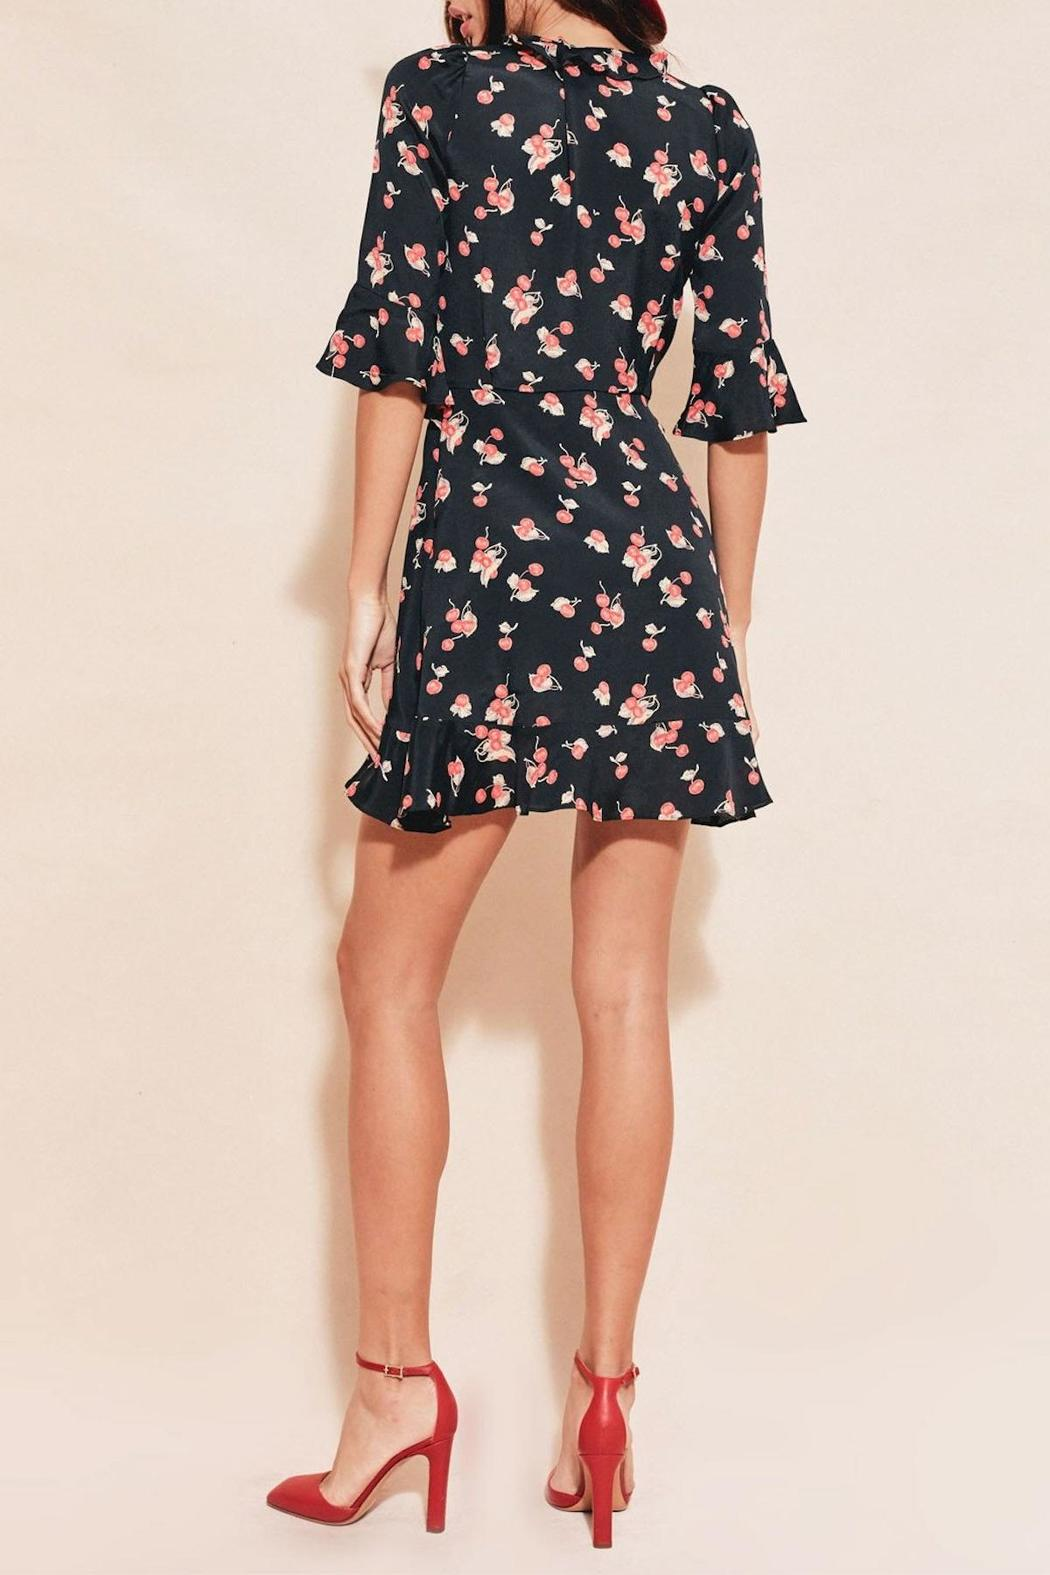 314a4fa33b2 FOR LOVE   LEMONS Cherry Sundress from New York by Lucia Boutique ...